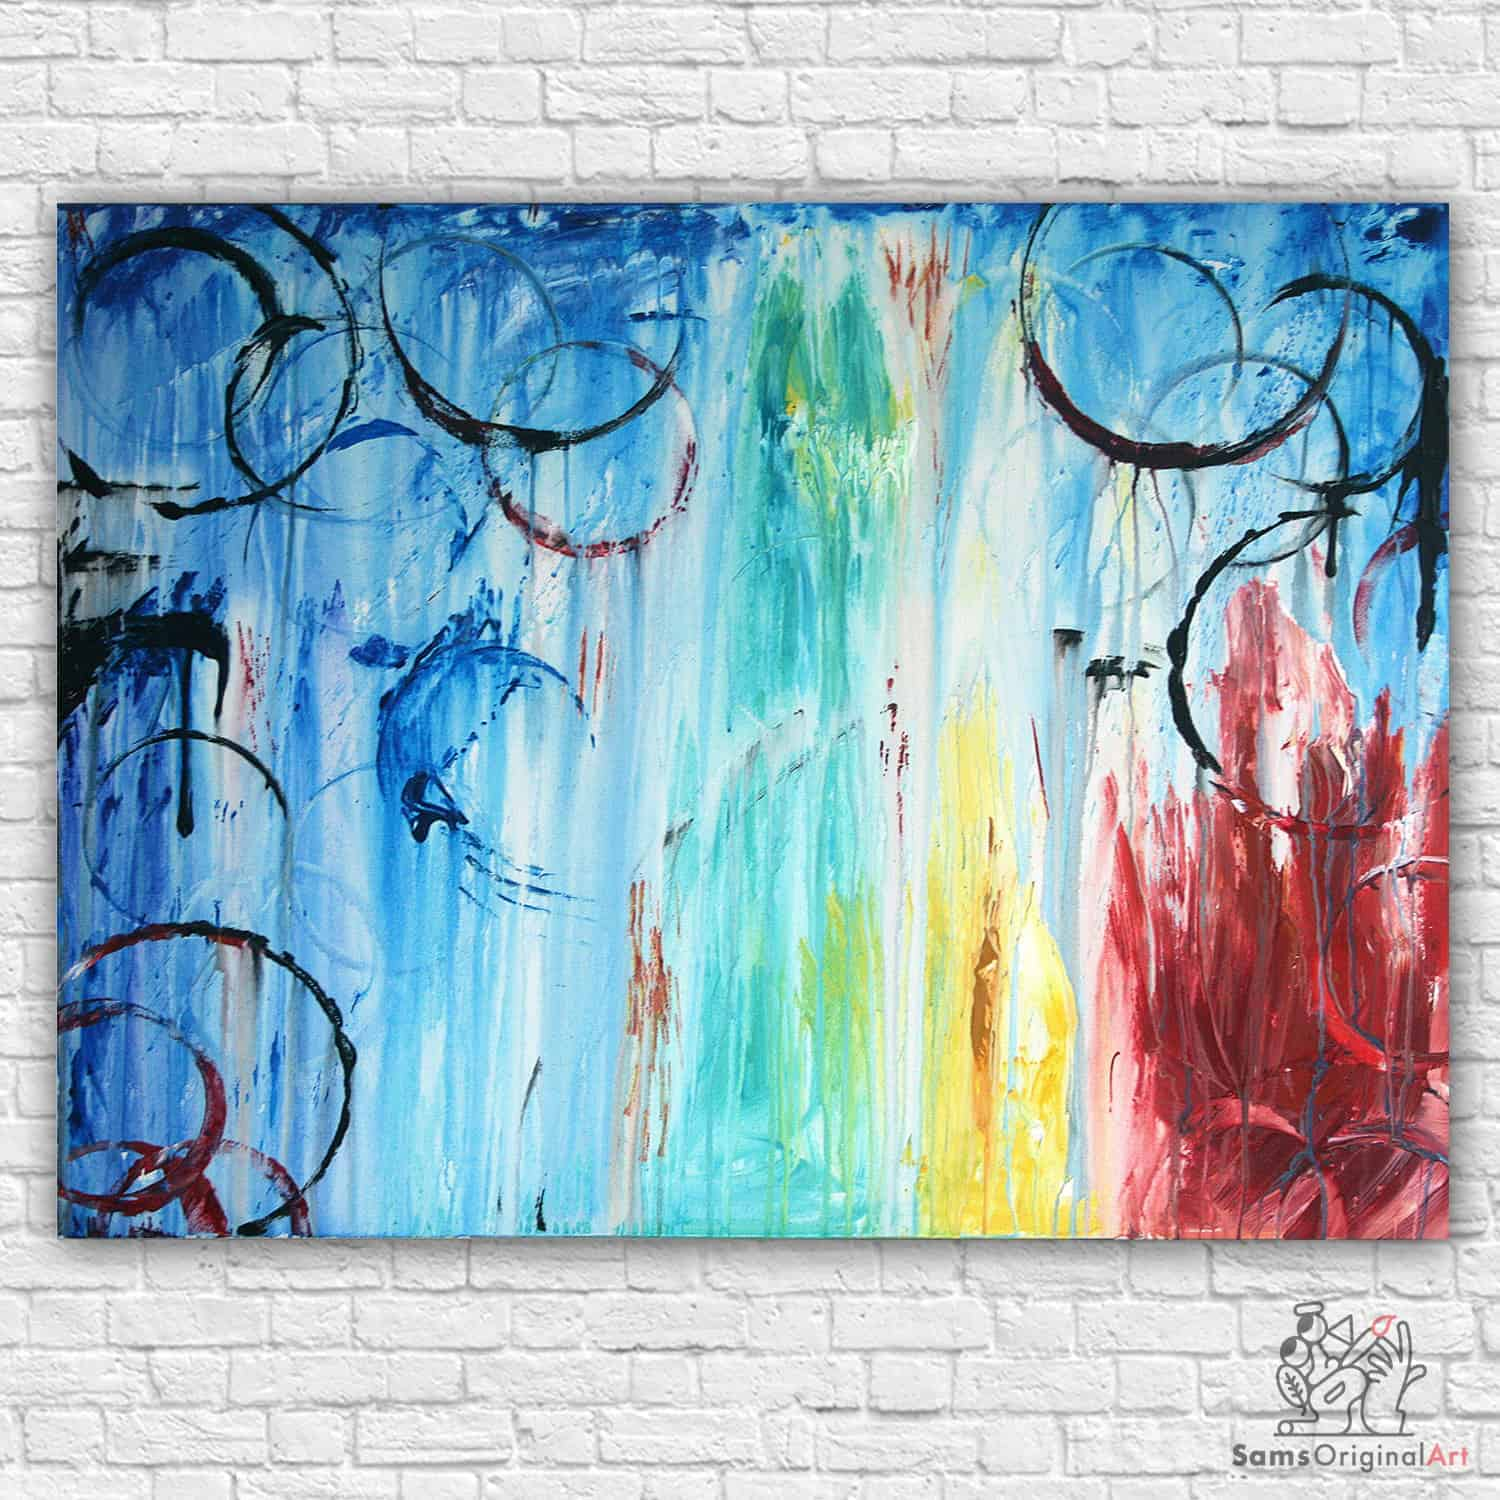 vibrant abstract painting vancouver